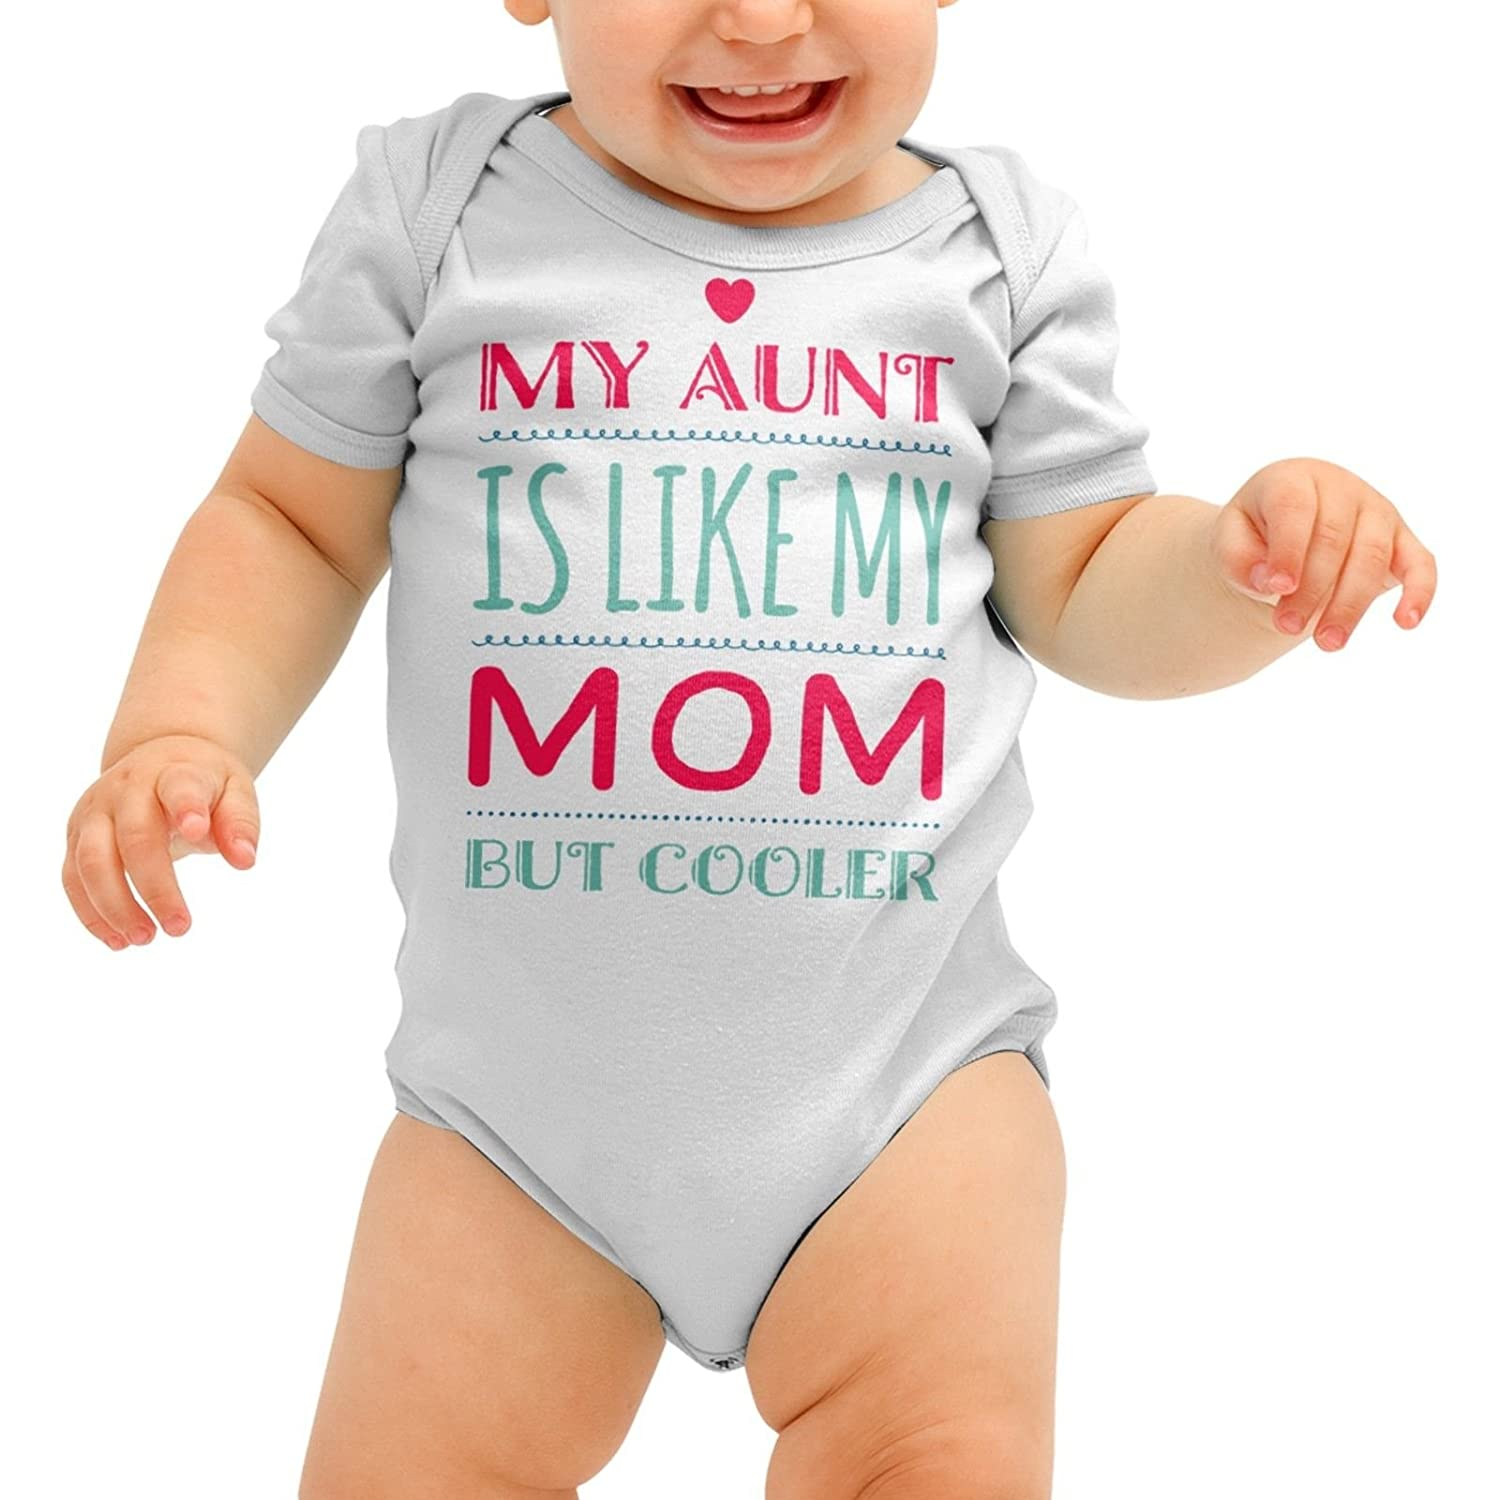 Funny Baby Grow, My Aunt is Like My Mom But Cooler, Auntie Gift for Baby Shower, Romper Suit, Babygrow, 0-3 Months, 3-6, 6-12, 12-18, All Colours